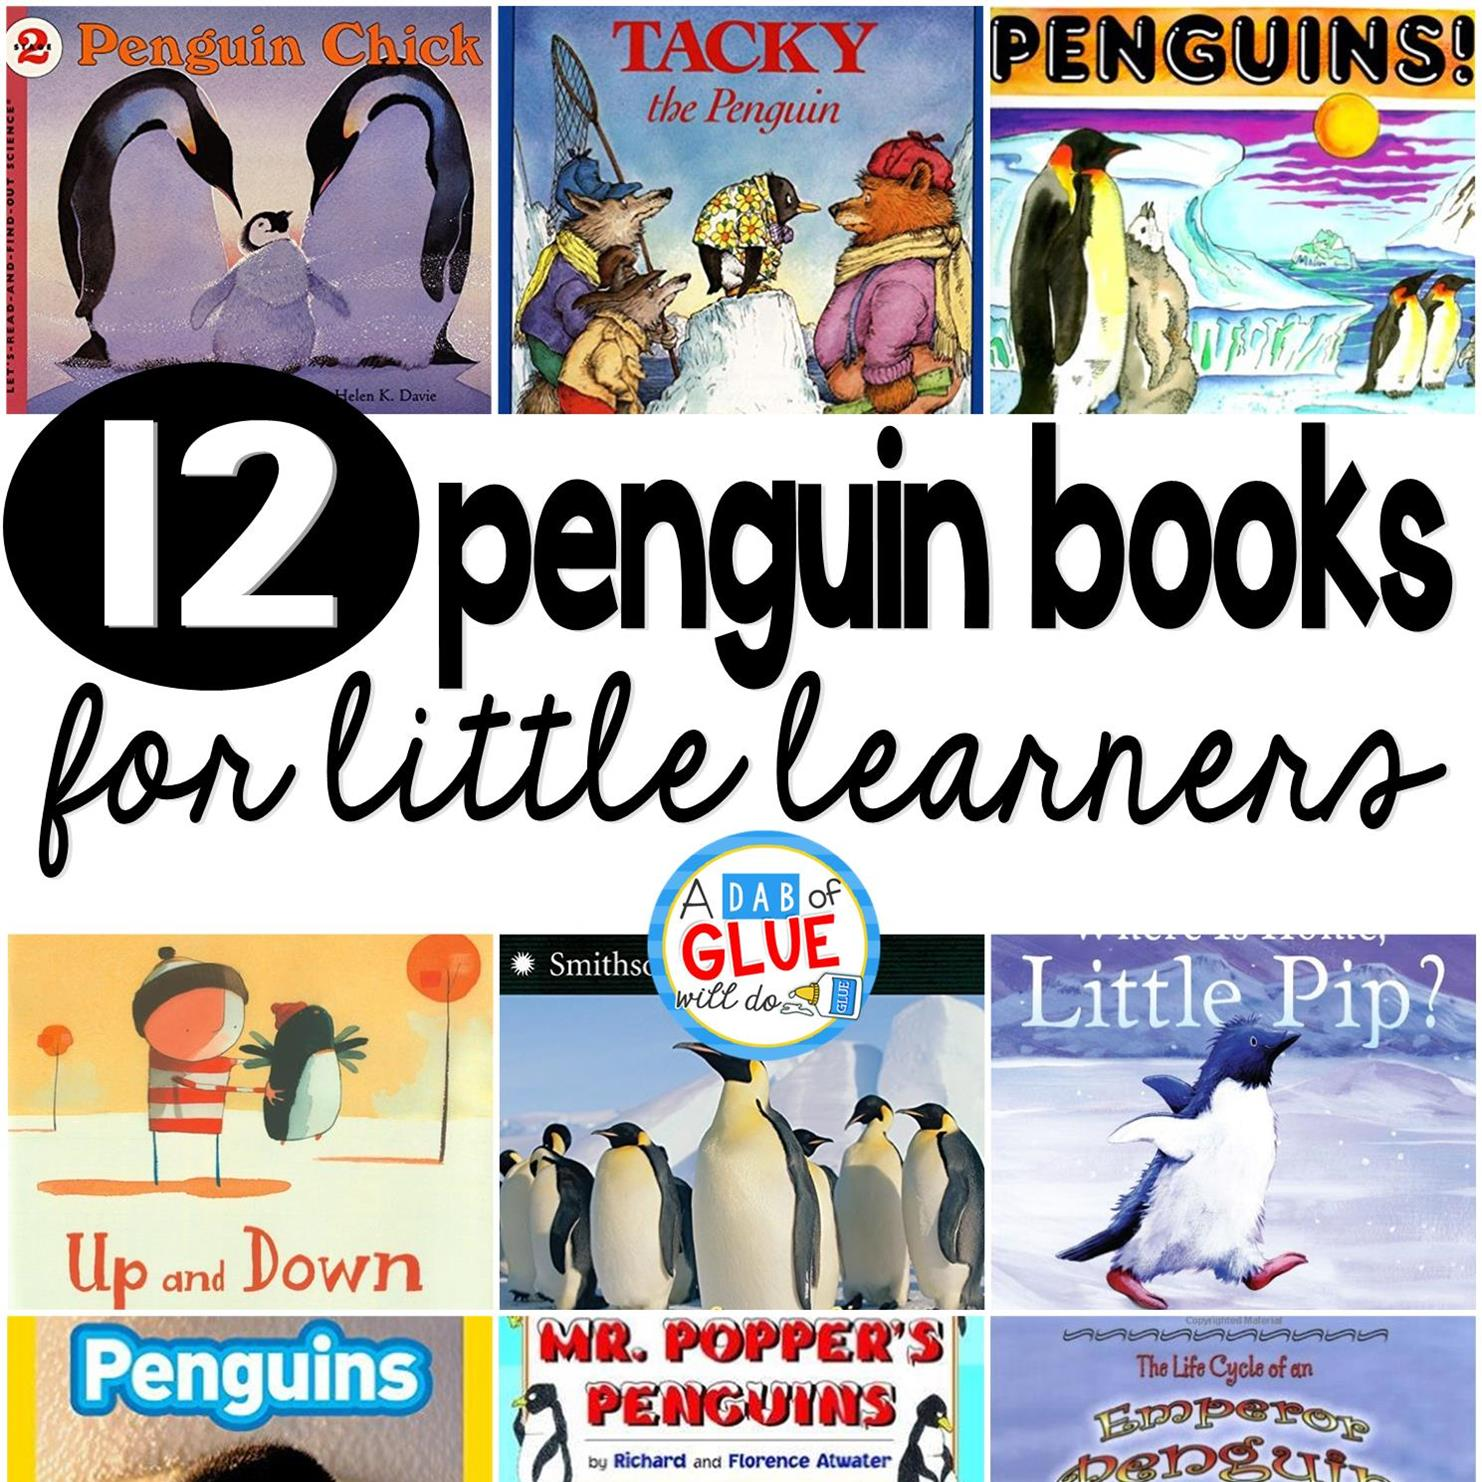 Our 12 favorite penguin books are perfect for your winter and penguin lesson plans. These are great for preschool, kindergarten, or first grade students.